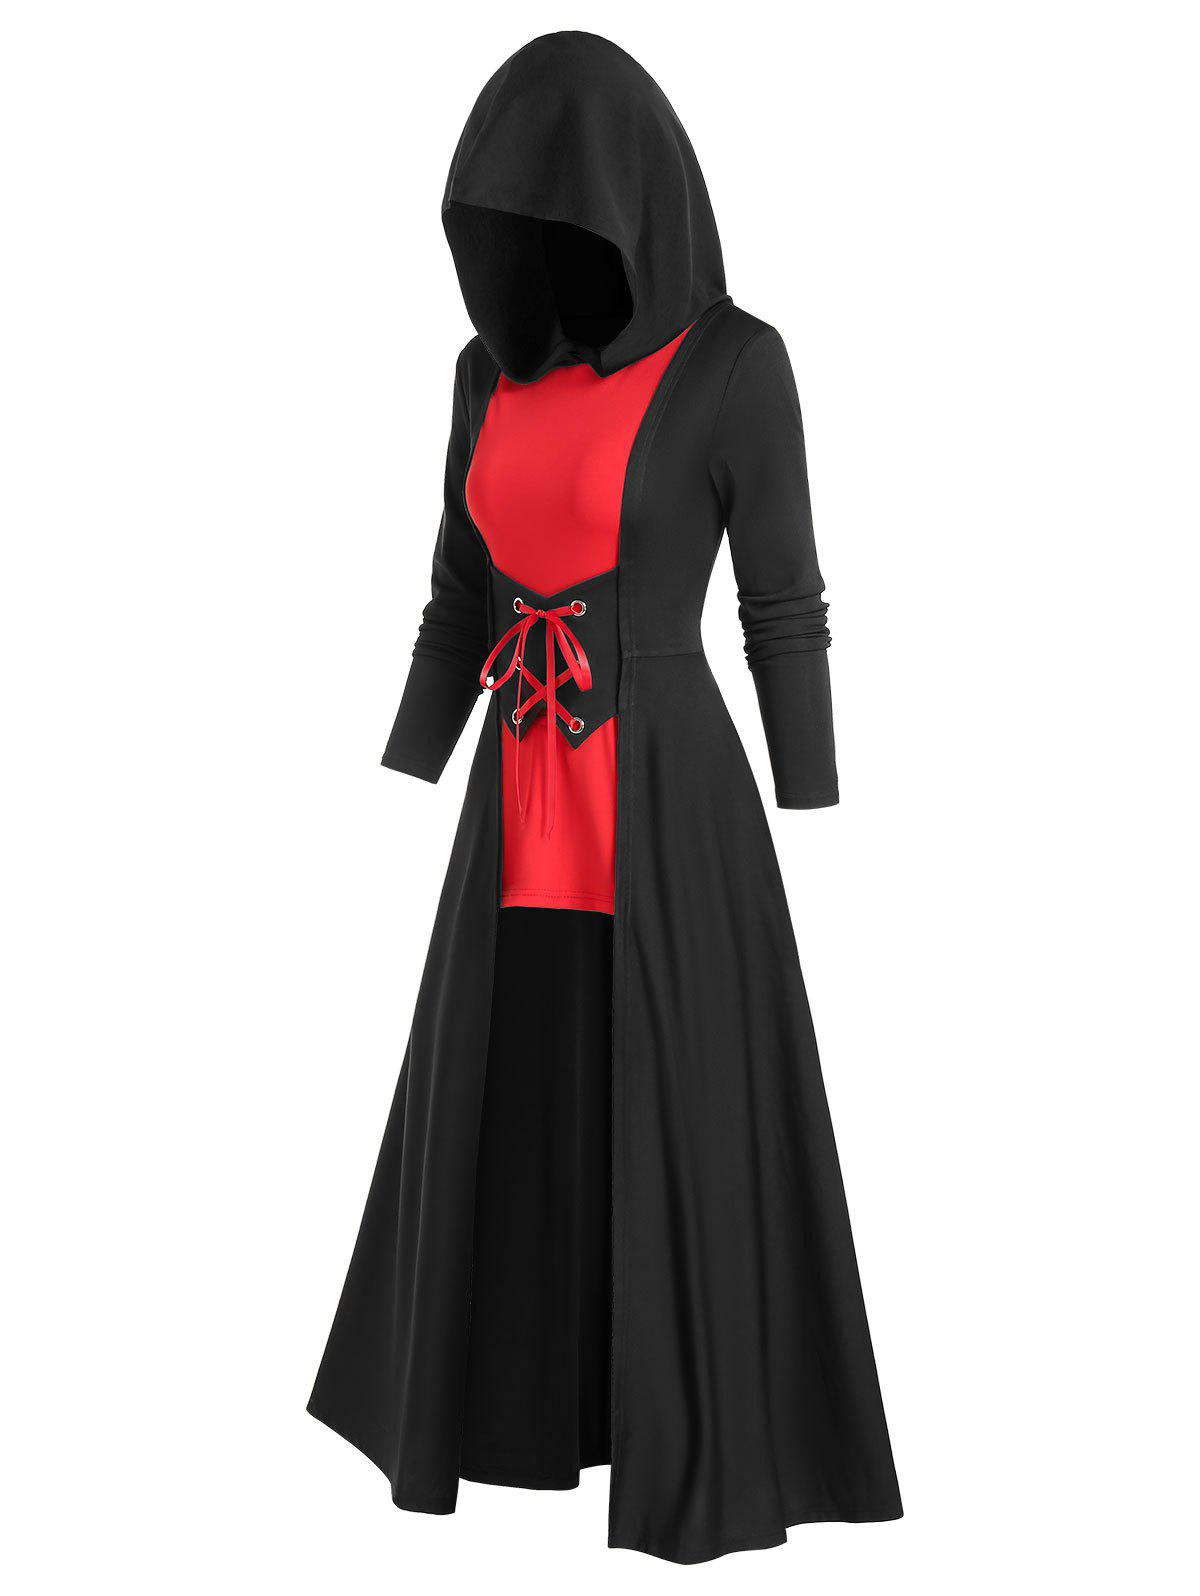 Chic Gothic Hooded Cinched Two-tone Cloak Dress